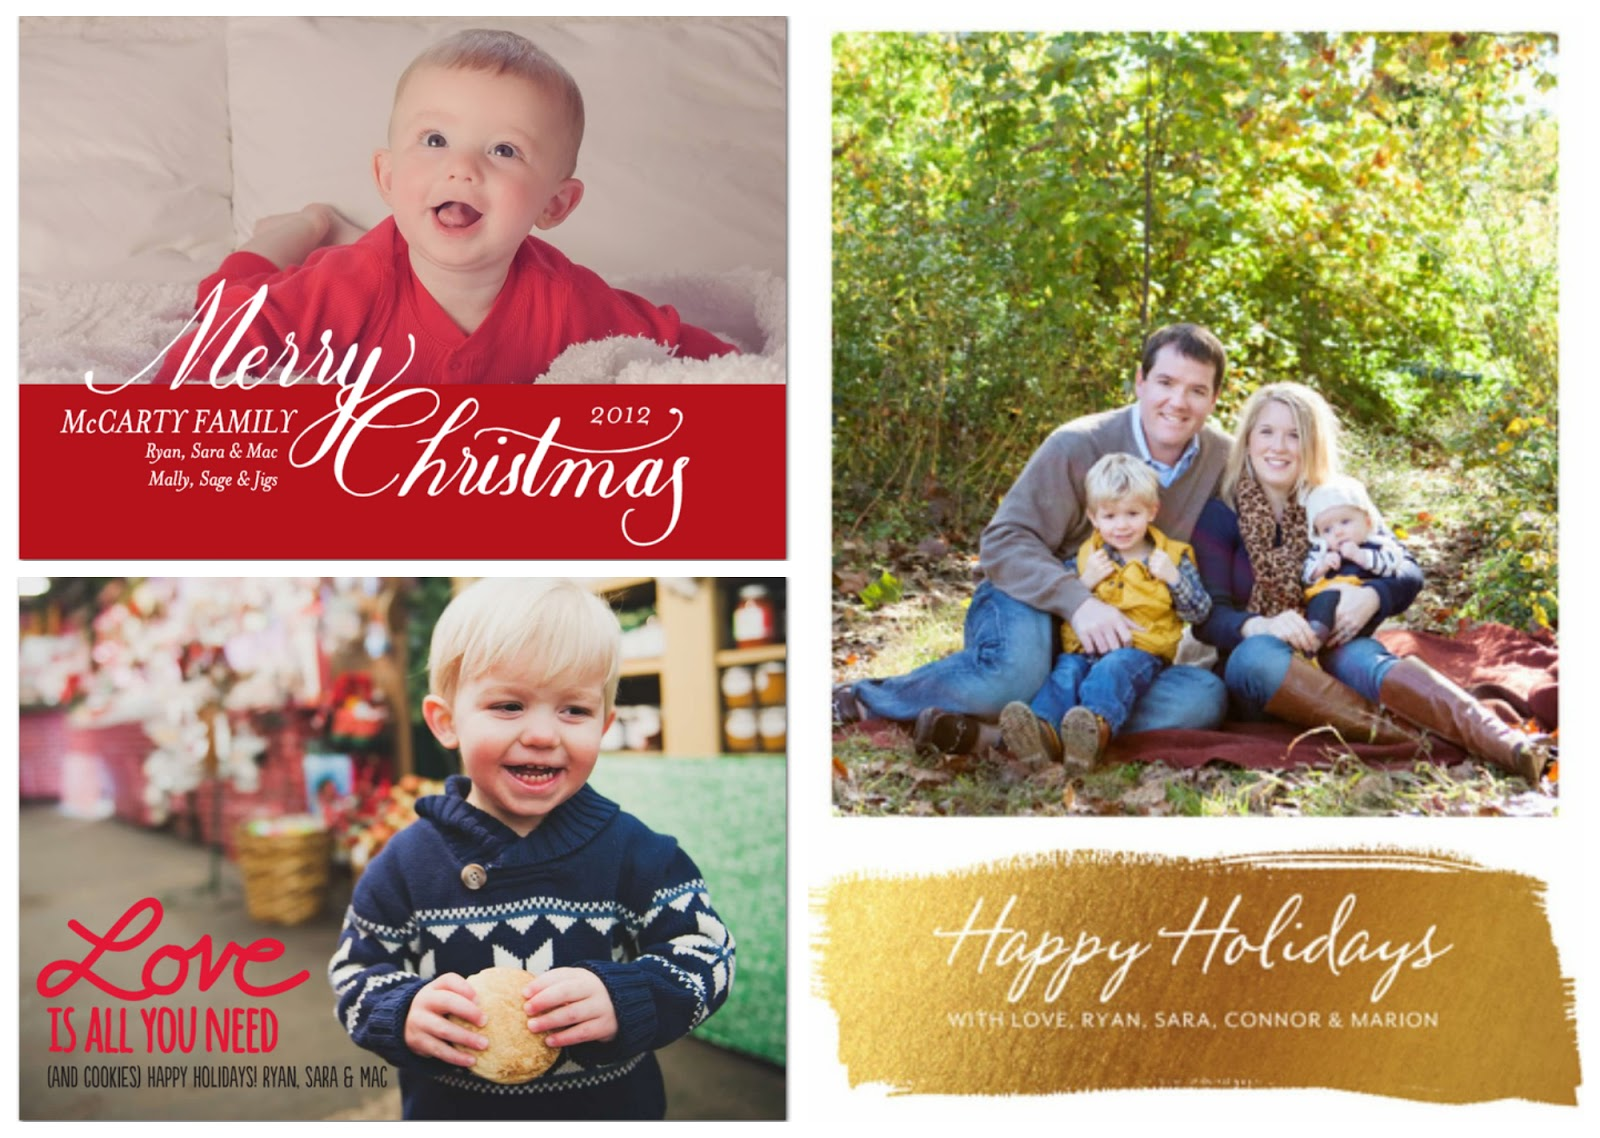 Running from the Law: The Great Christmas Card Debacle of 2015